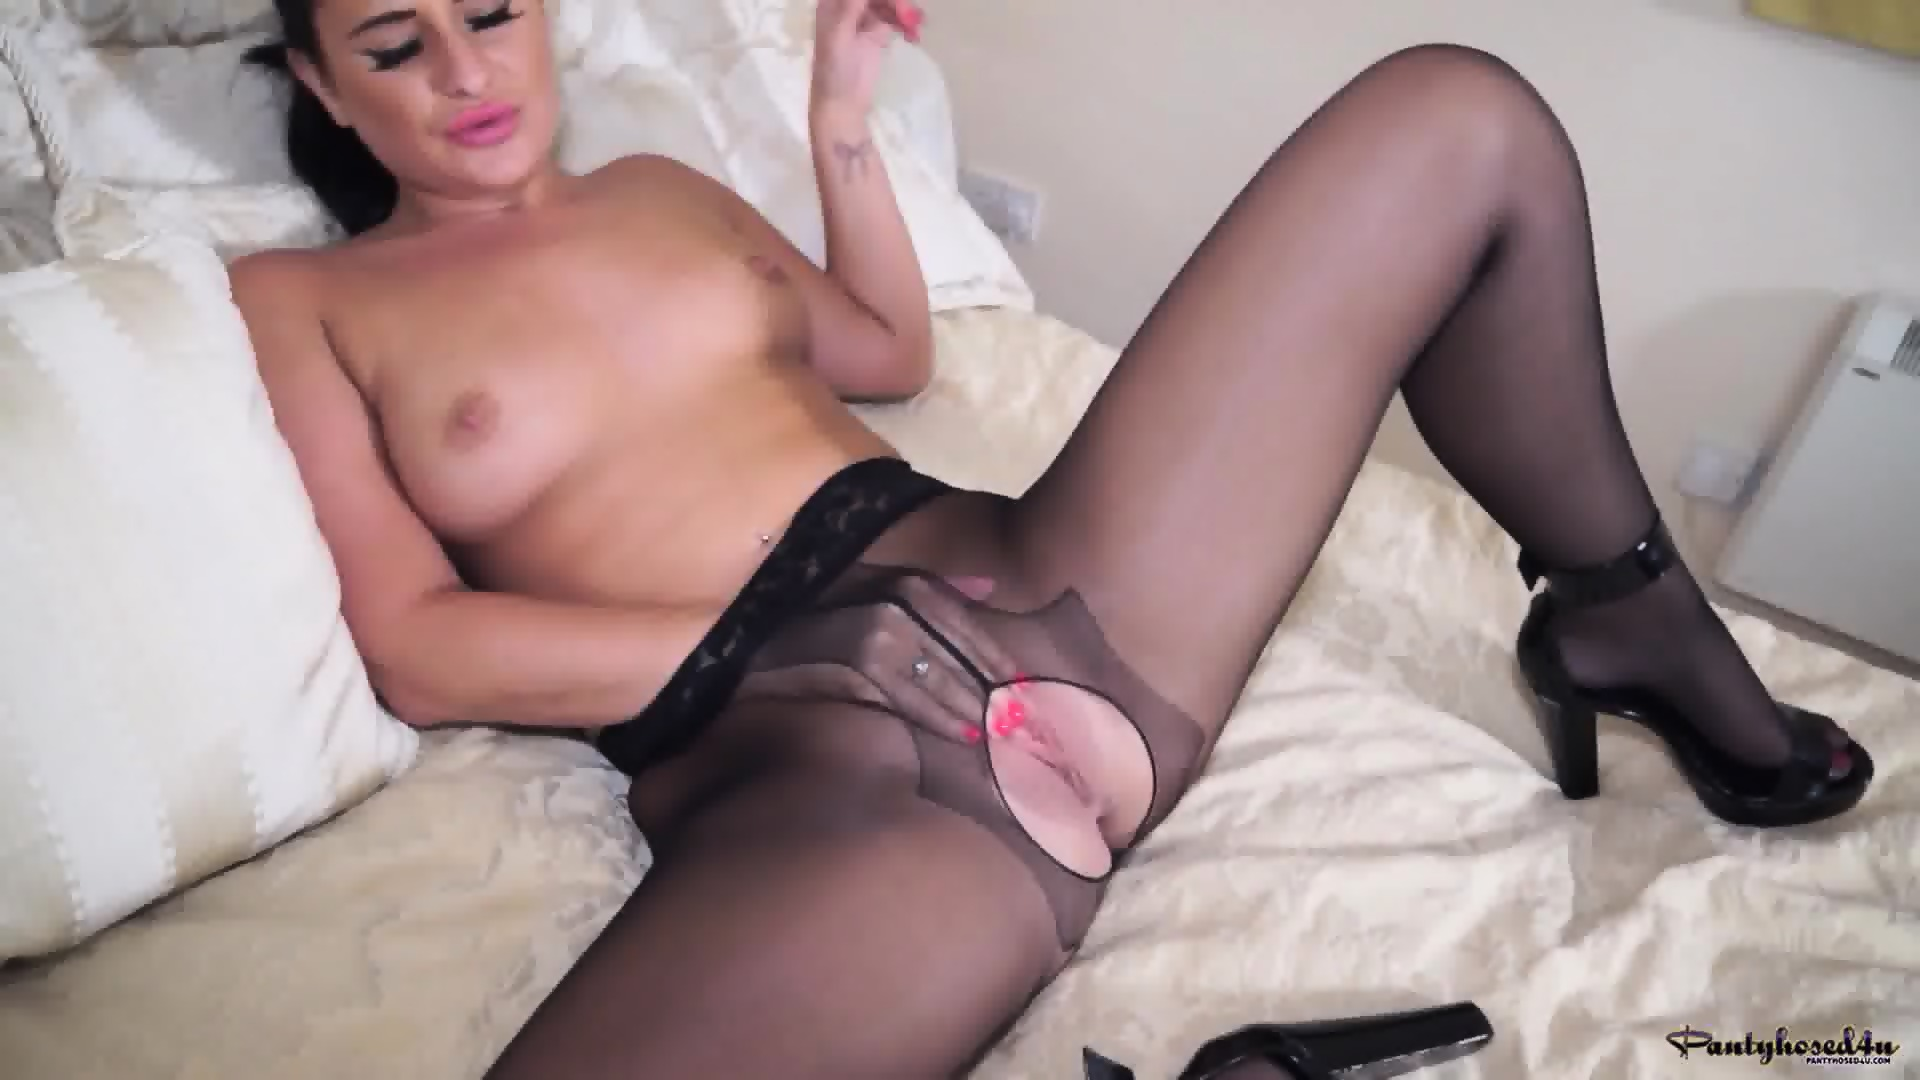 Long plastic dildo for her tighter hole